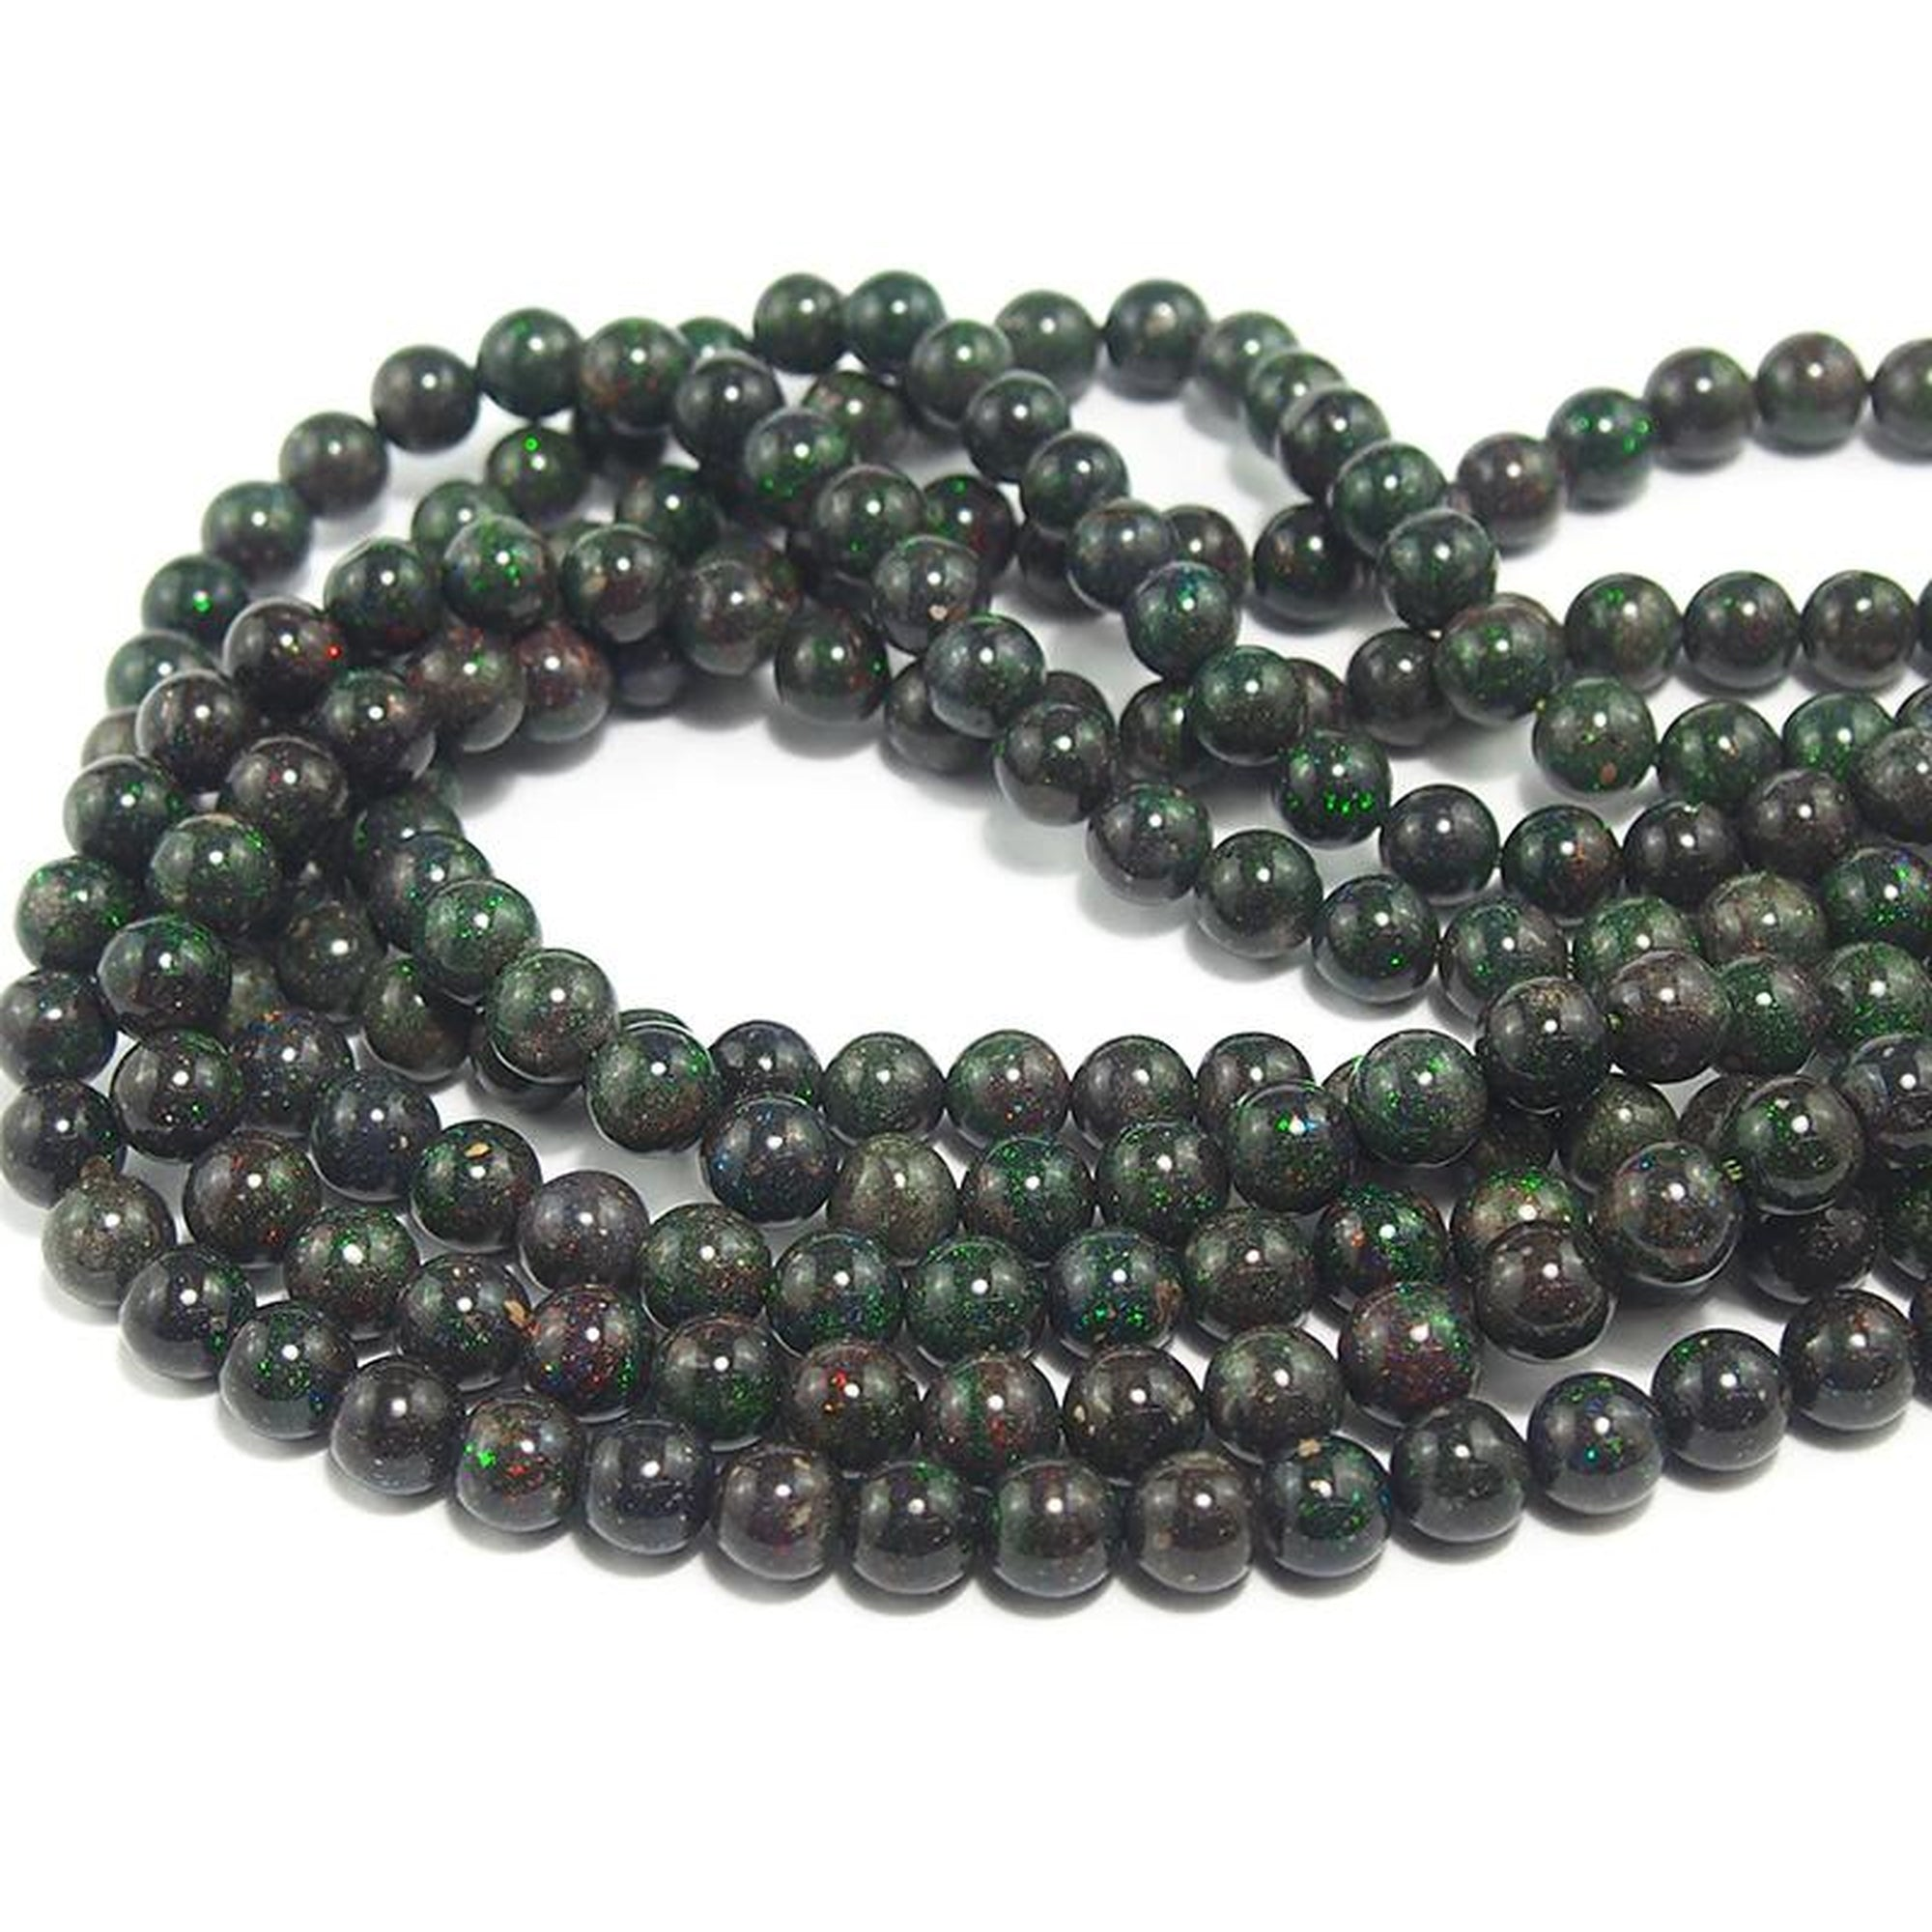 heeral of beads gemstone rupala collections exports all faceted kinds wholesale china supplier no